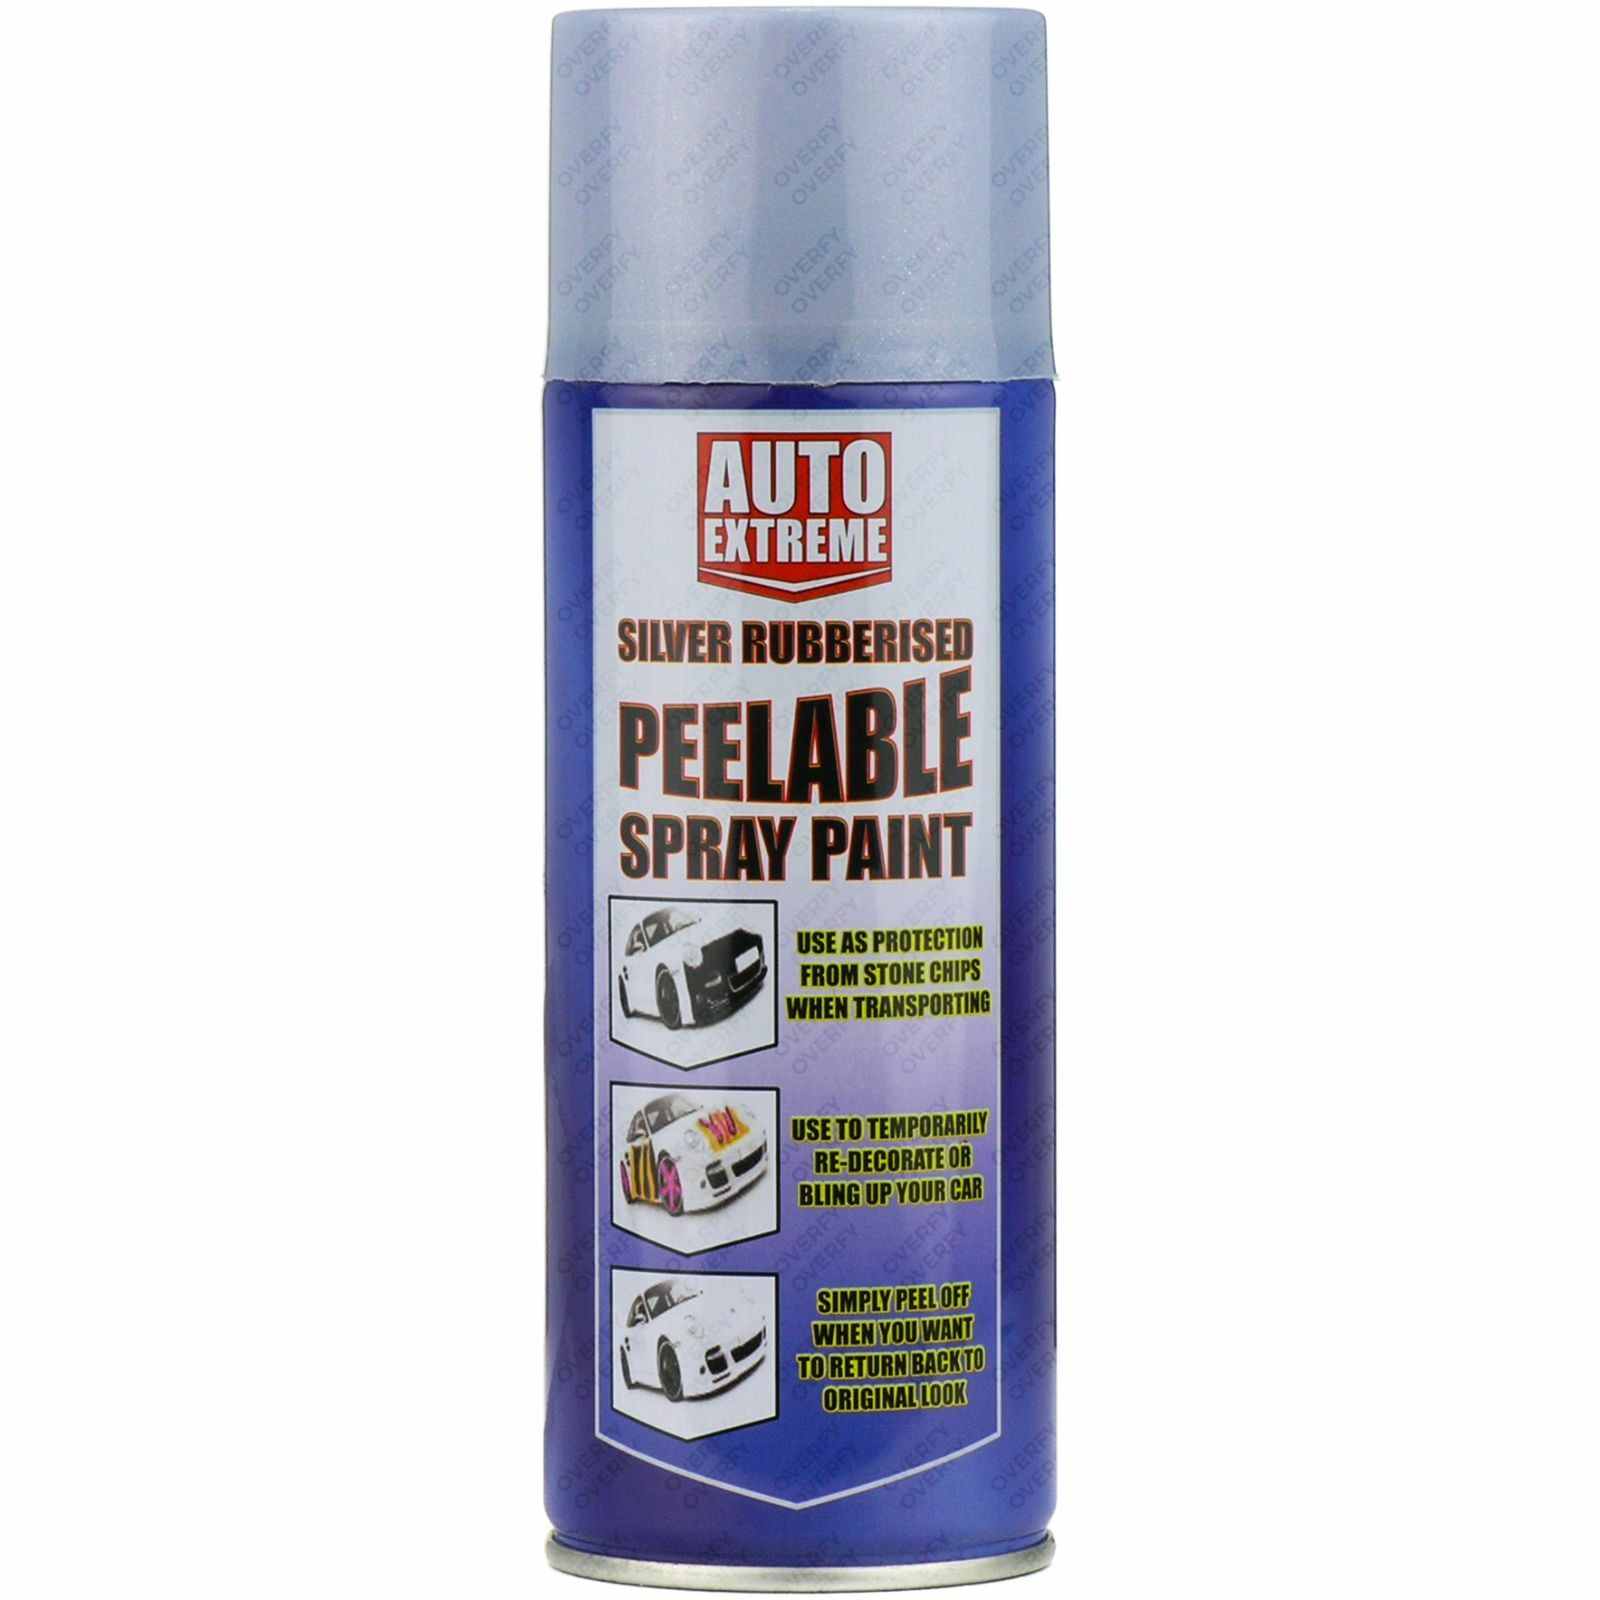 Auto Extreme Aerosol Spray Paint Satin Gloss Matt Primer Peelable Galvanised 400 Ebay